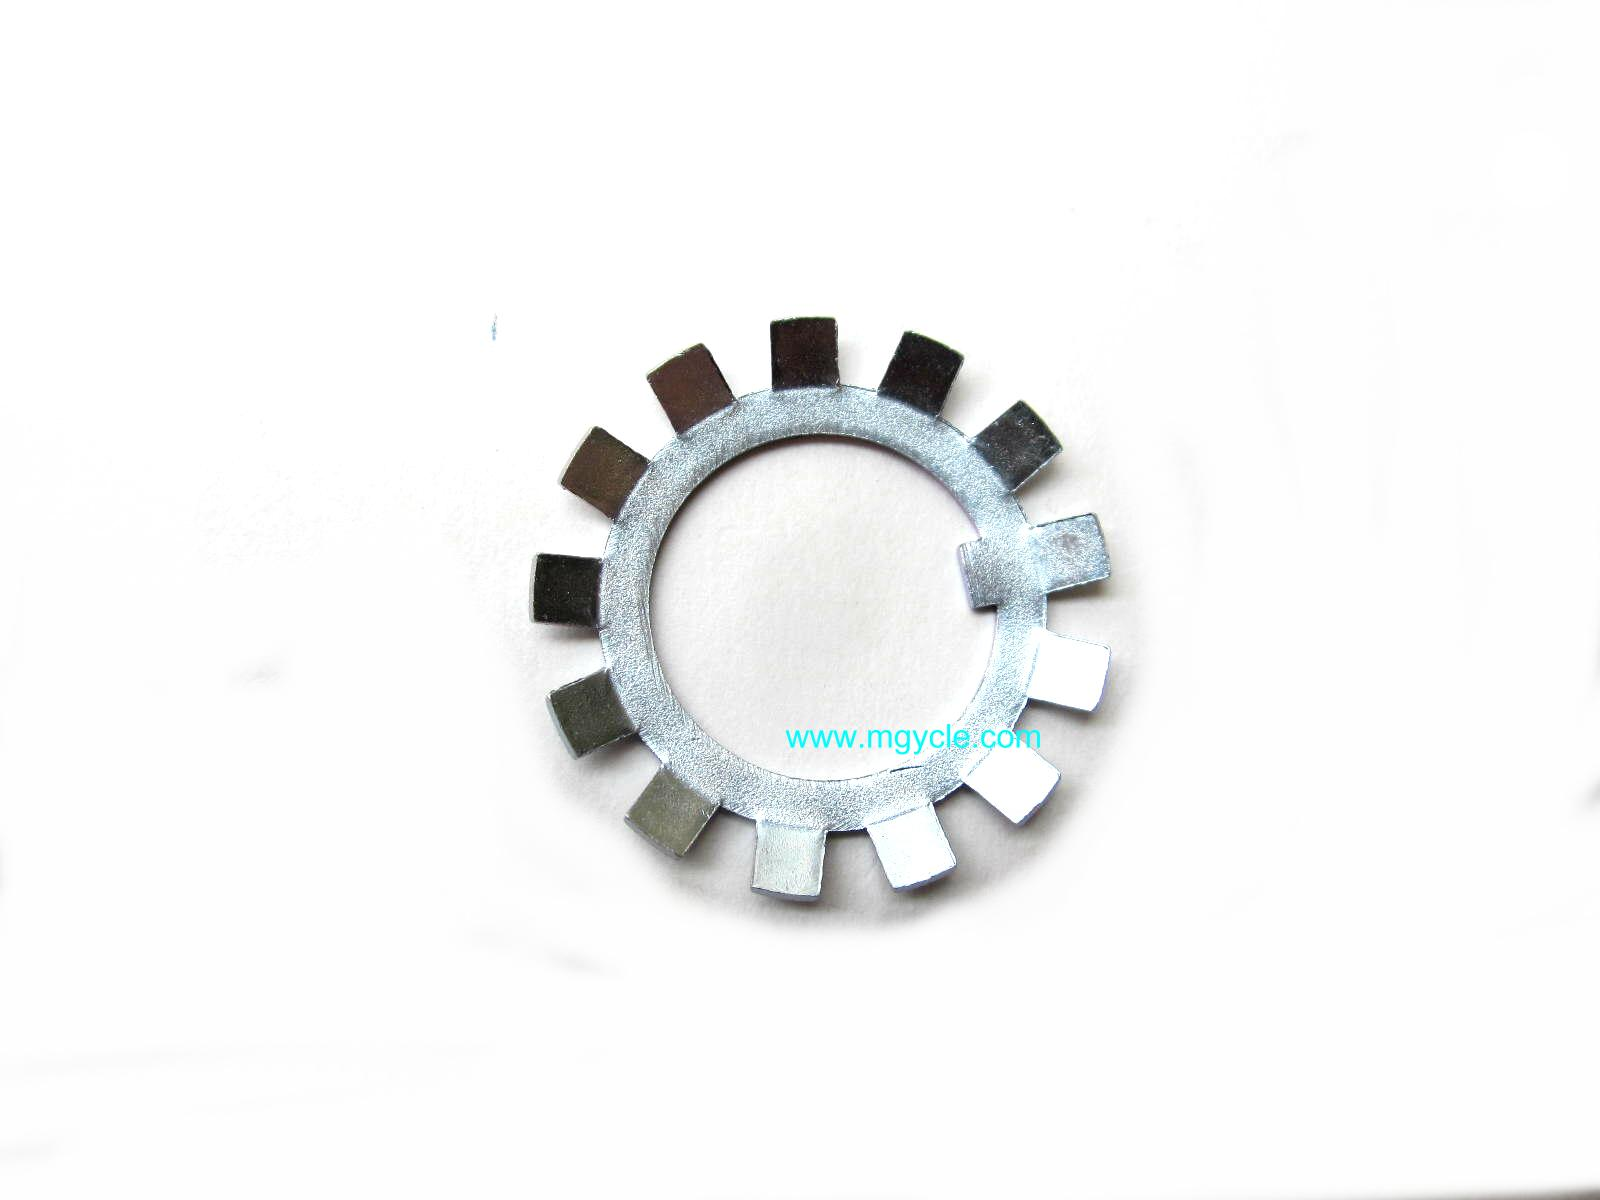 Star washer for crankshaft ring nut, V11 Sport 6 speed input hub